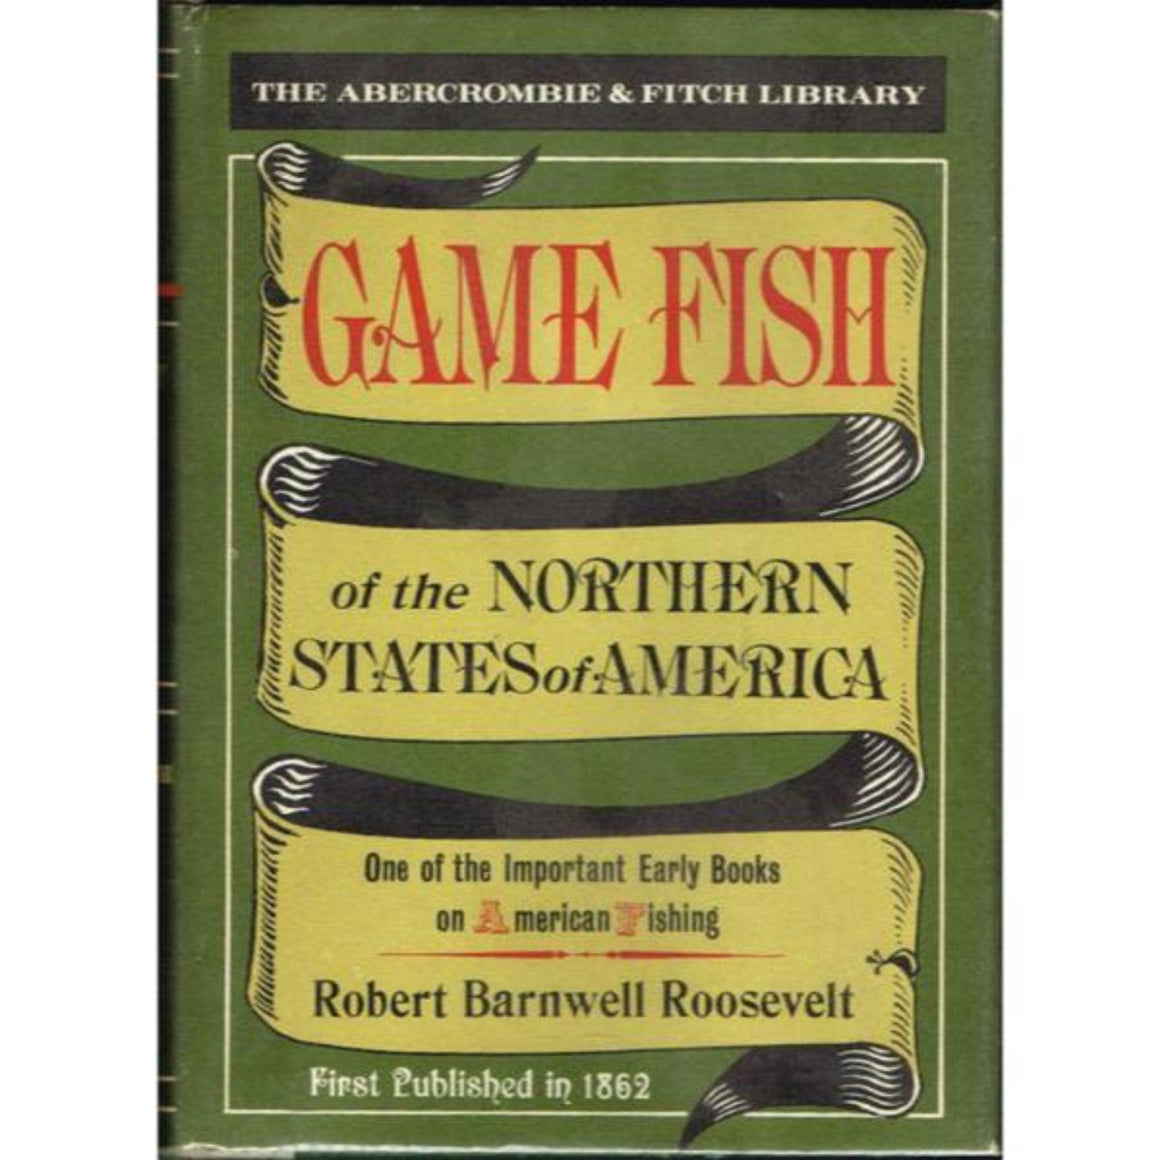 The A&F Library 'Game Fish of the Northern States of America'